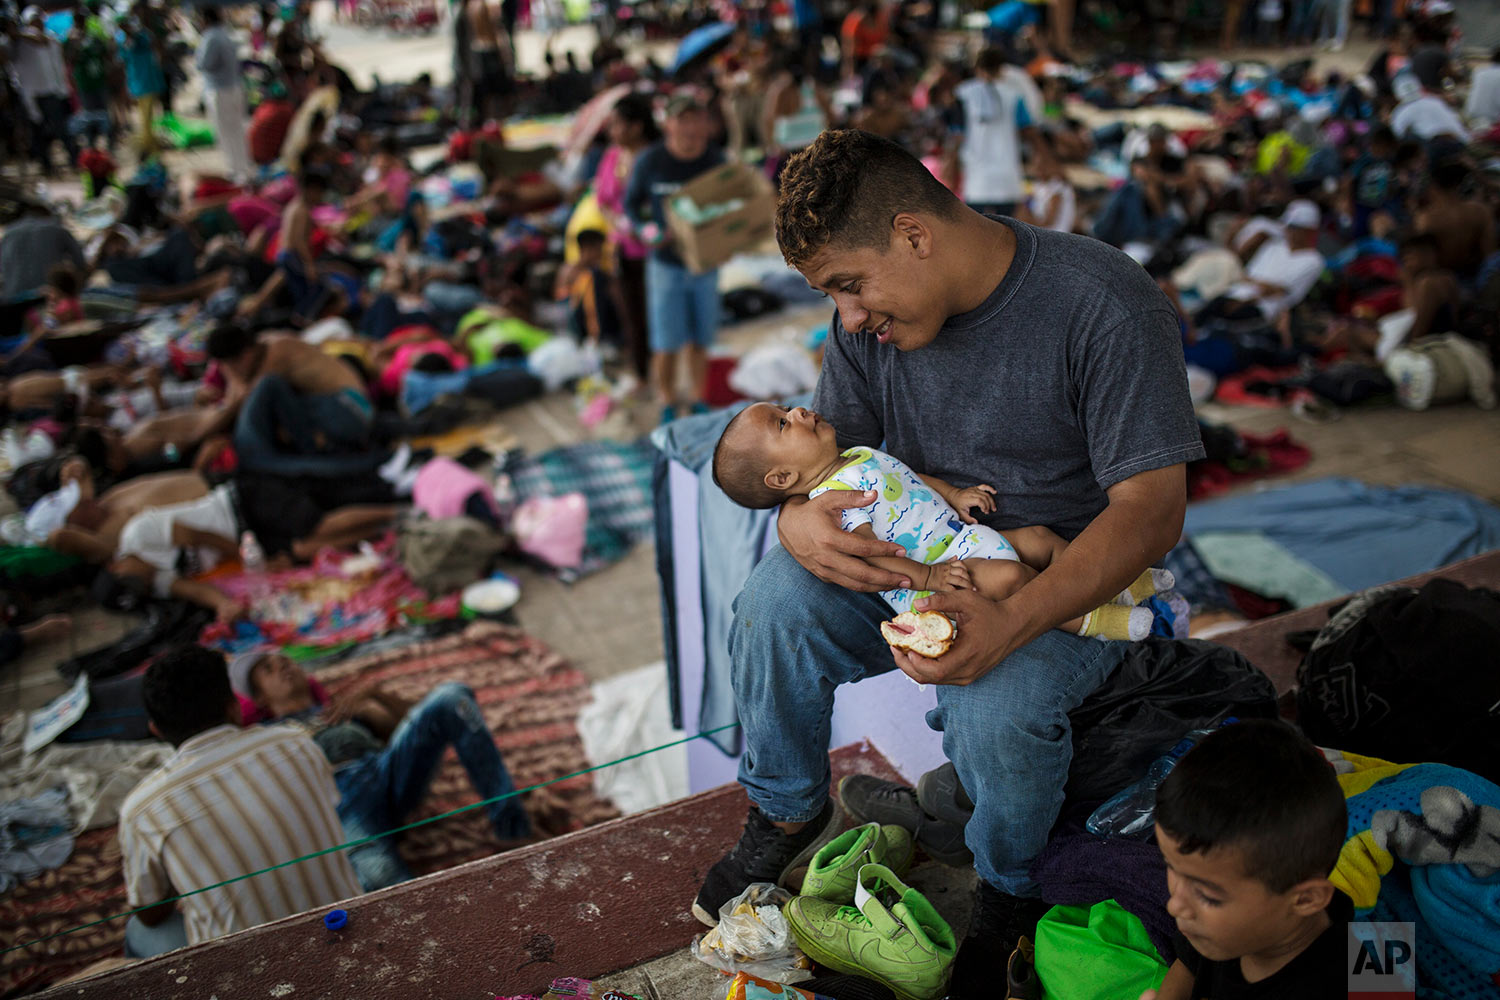 Jose Luis Ramos, a Honduran migrant traveling to the U.S. with a caravan, plays with his 3-month-old son Froilan in the central square of Mapastepec, Mexico, Wednesday, Oct. 24, 2018. (AP Photo/Rodrigo Abd)